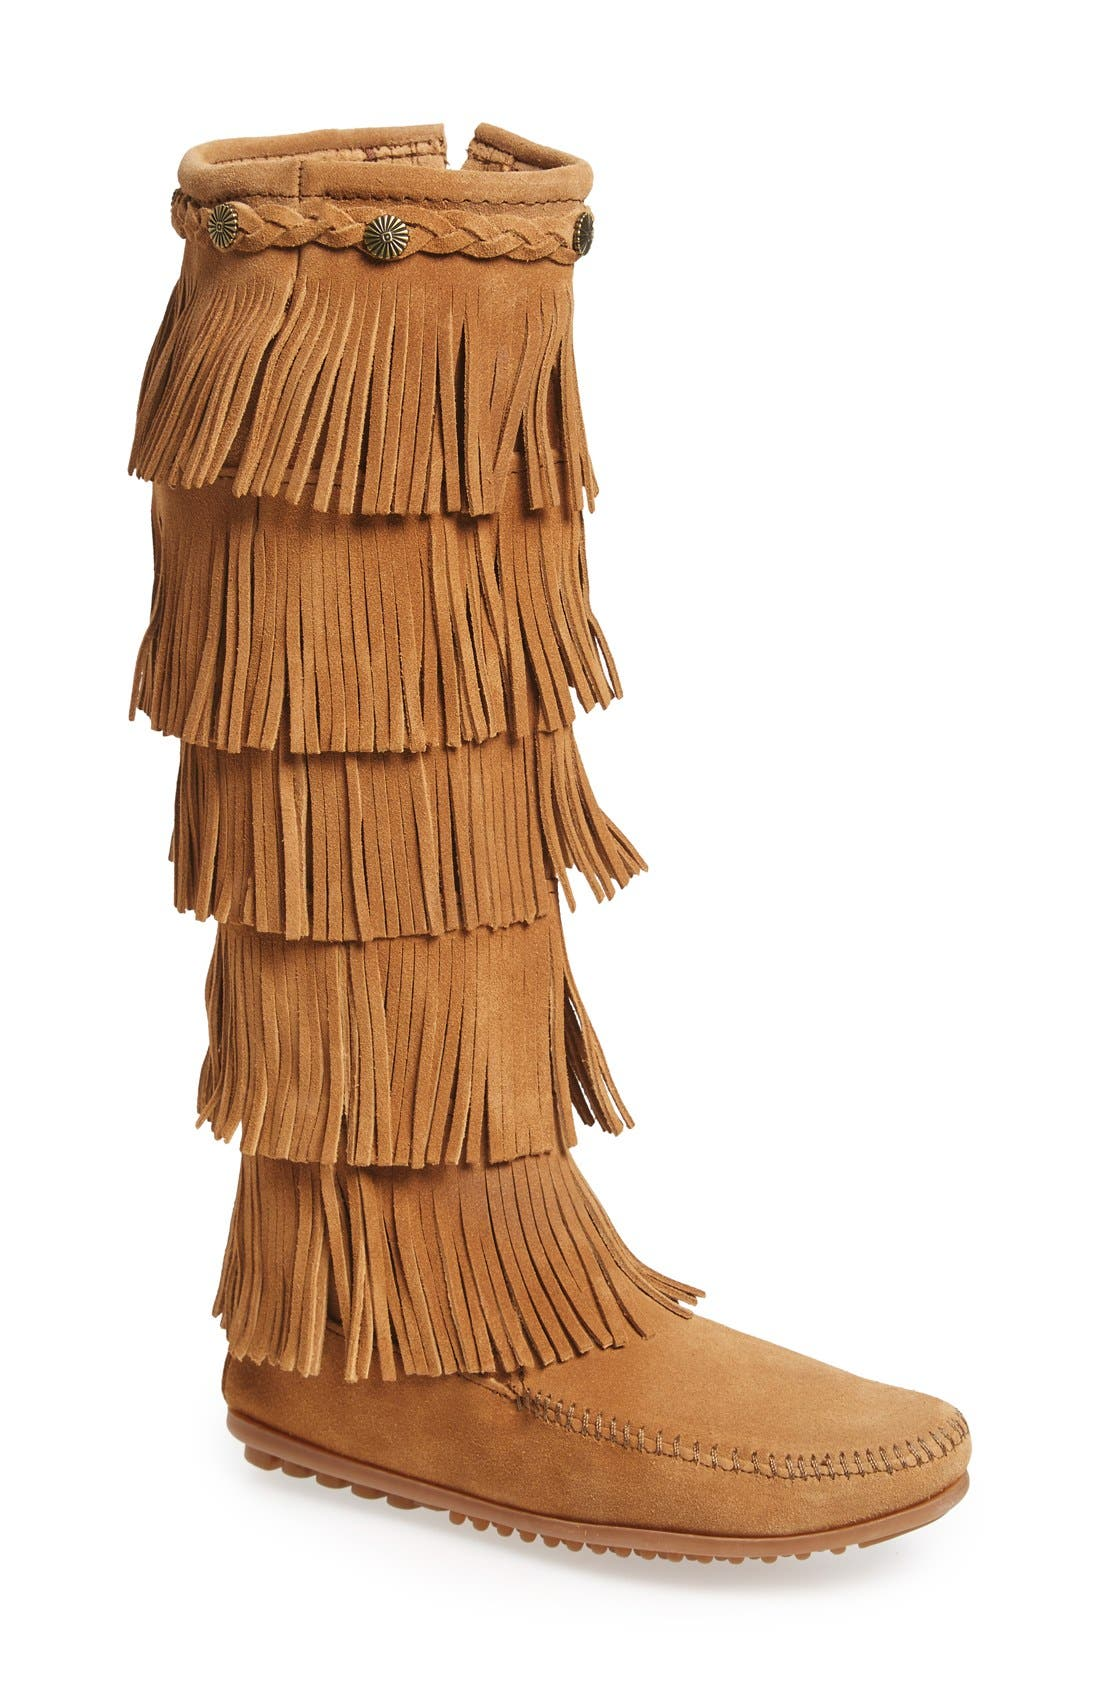 Vintage Boots, Granny Boots, Retro Boots Womens Minnetonka 5 Layer Fringe Boot Size 5 M - Brown $99.95 AT vintagedancer.com